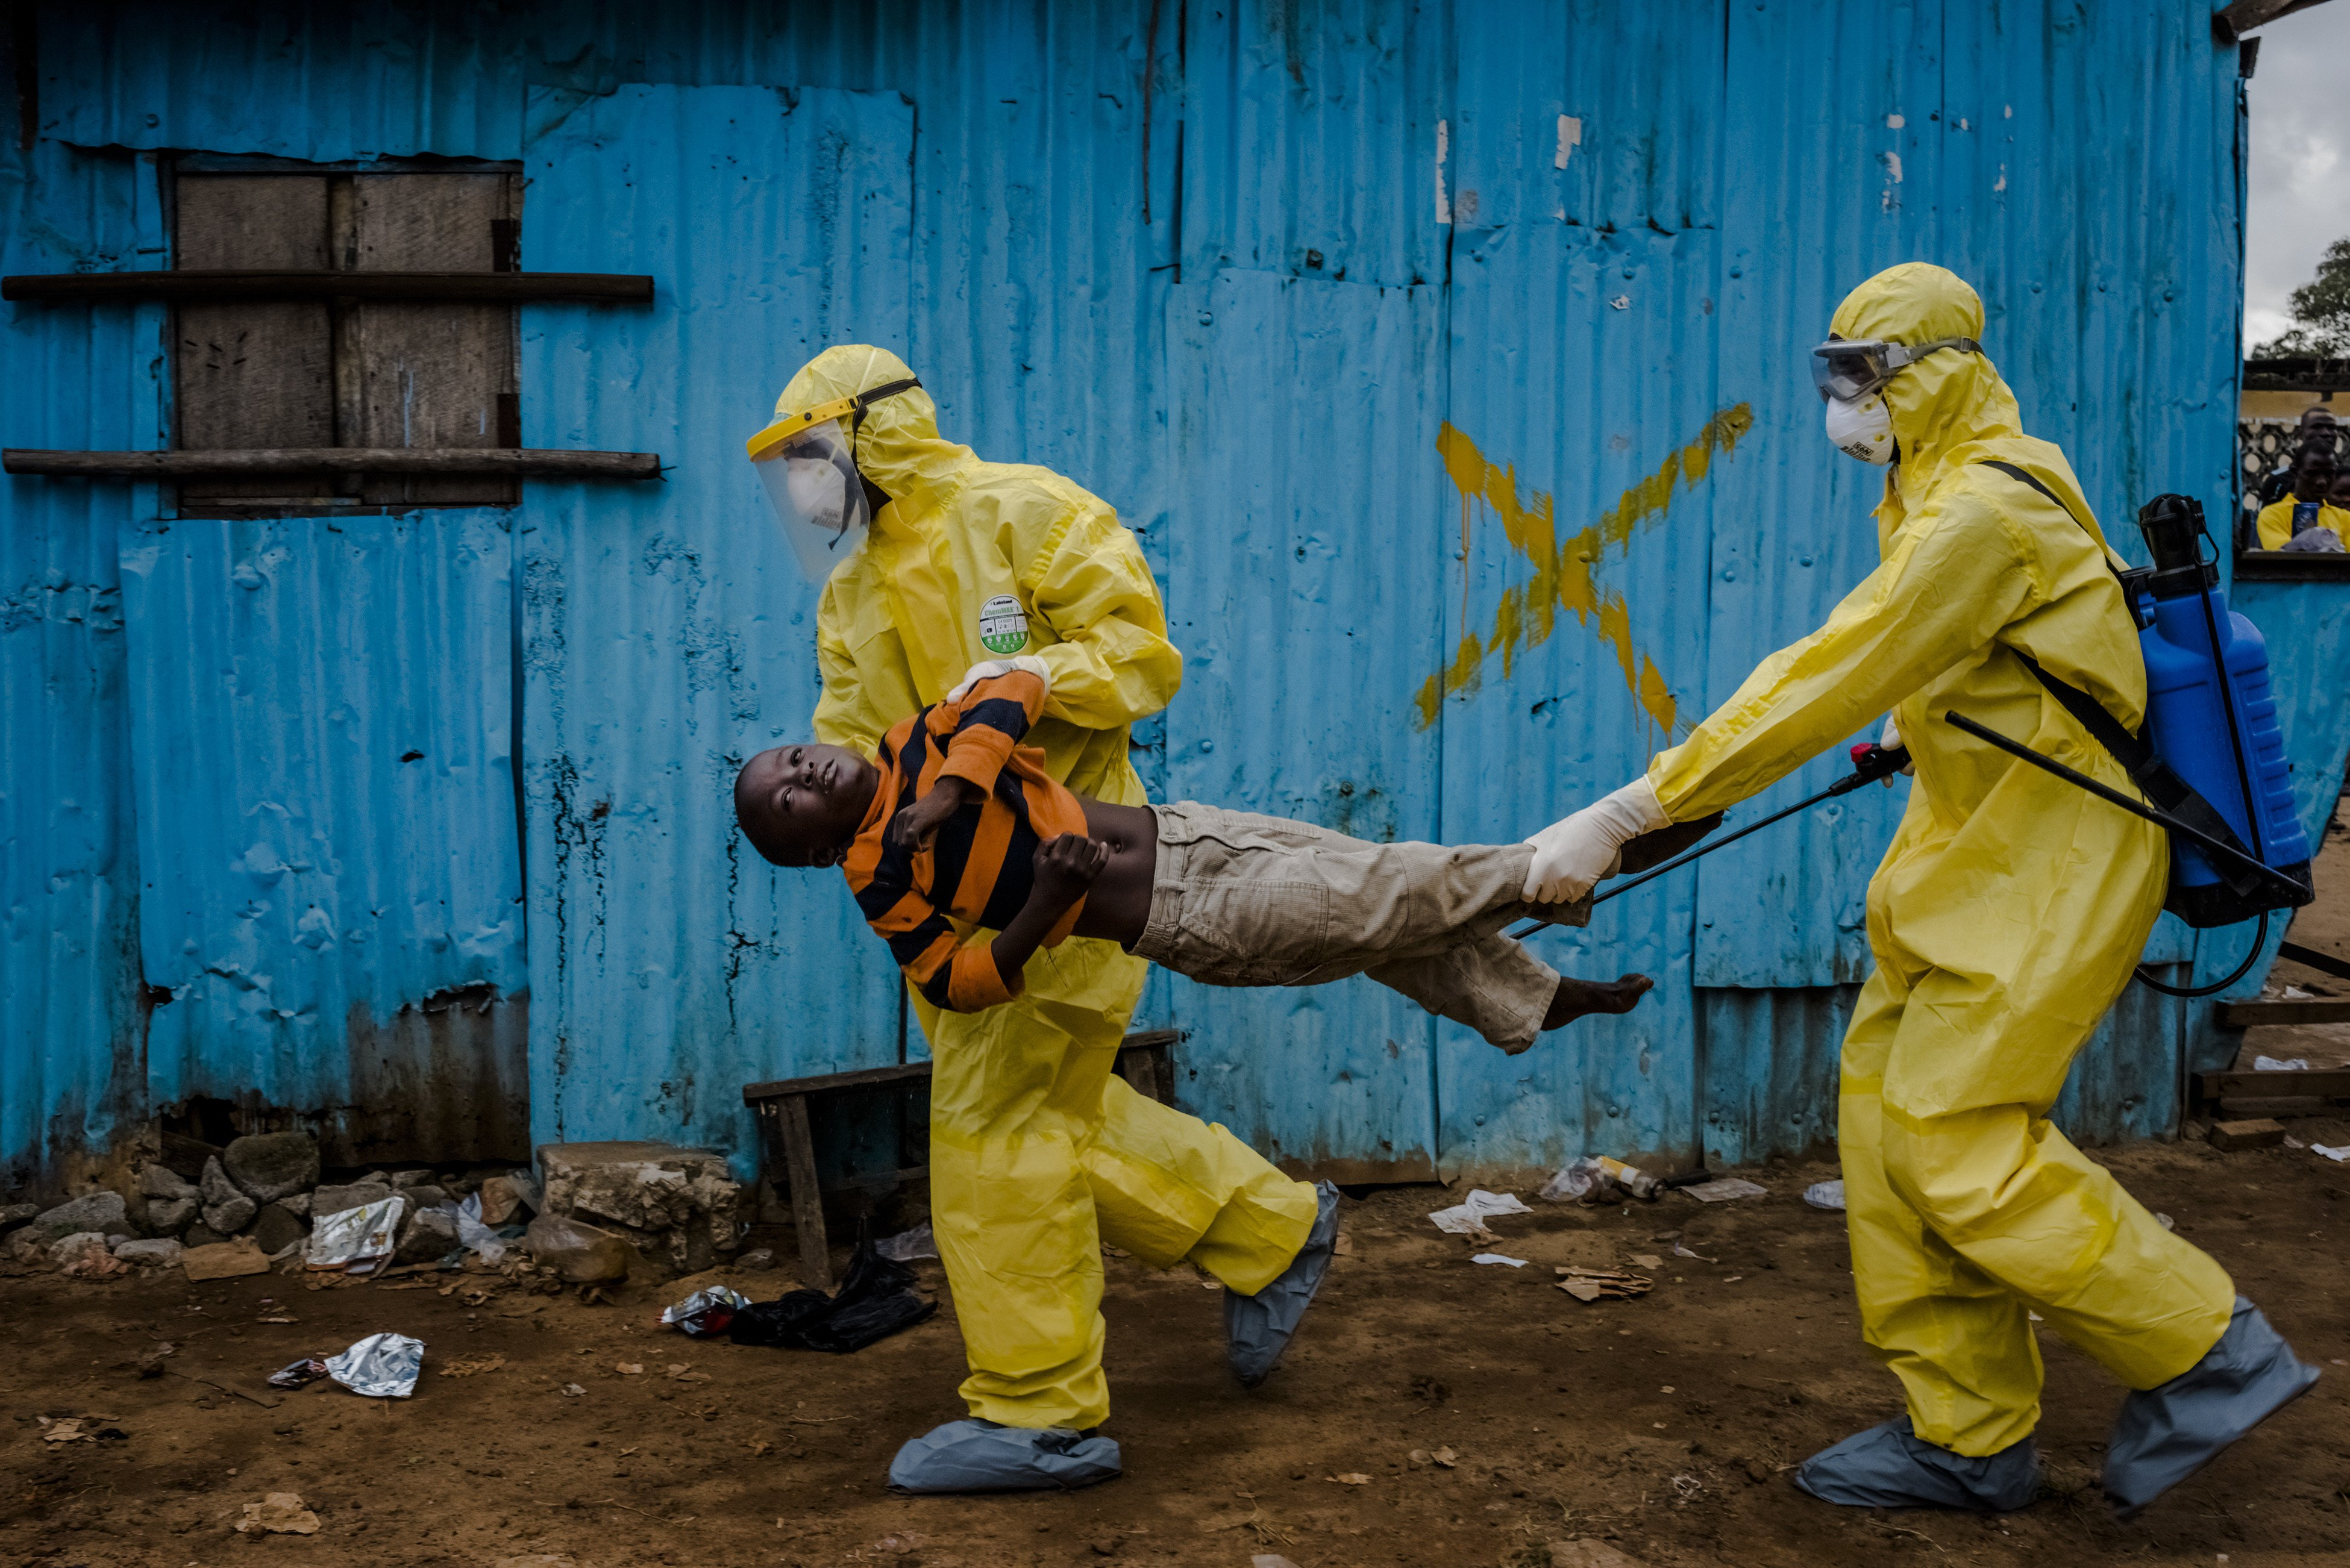 Medical staff carry James Dorbor, 8, suspected of having Ebola, into a treatment facility in Monrovia, Liberia on Sept. 5, 2014.